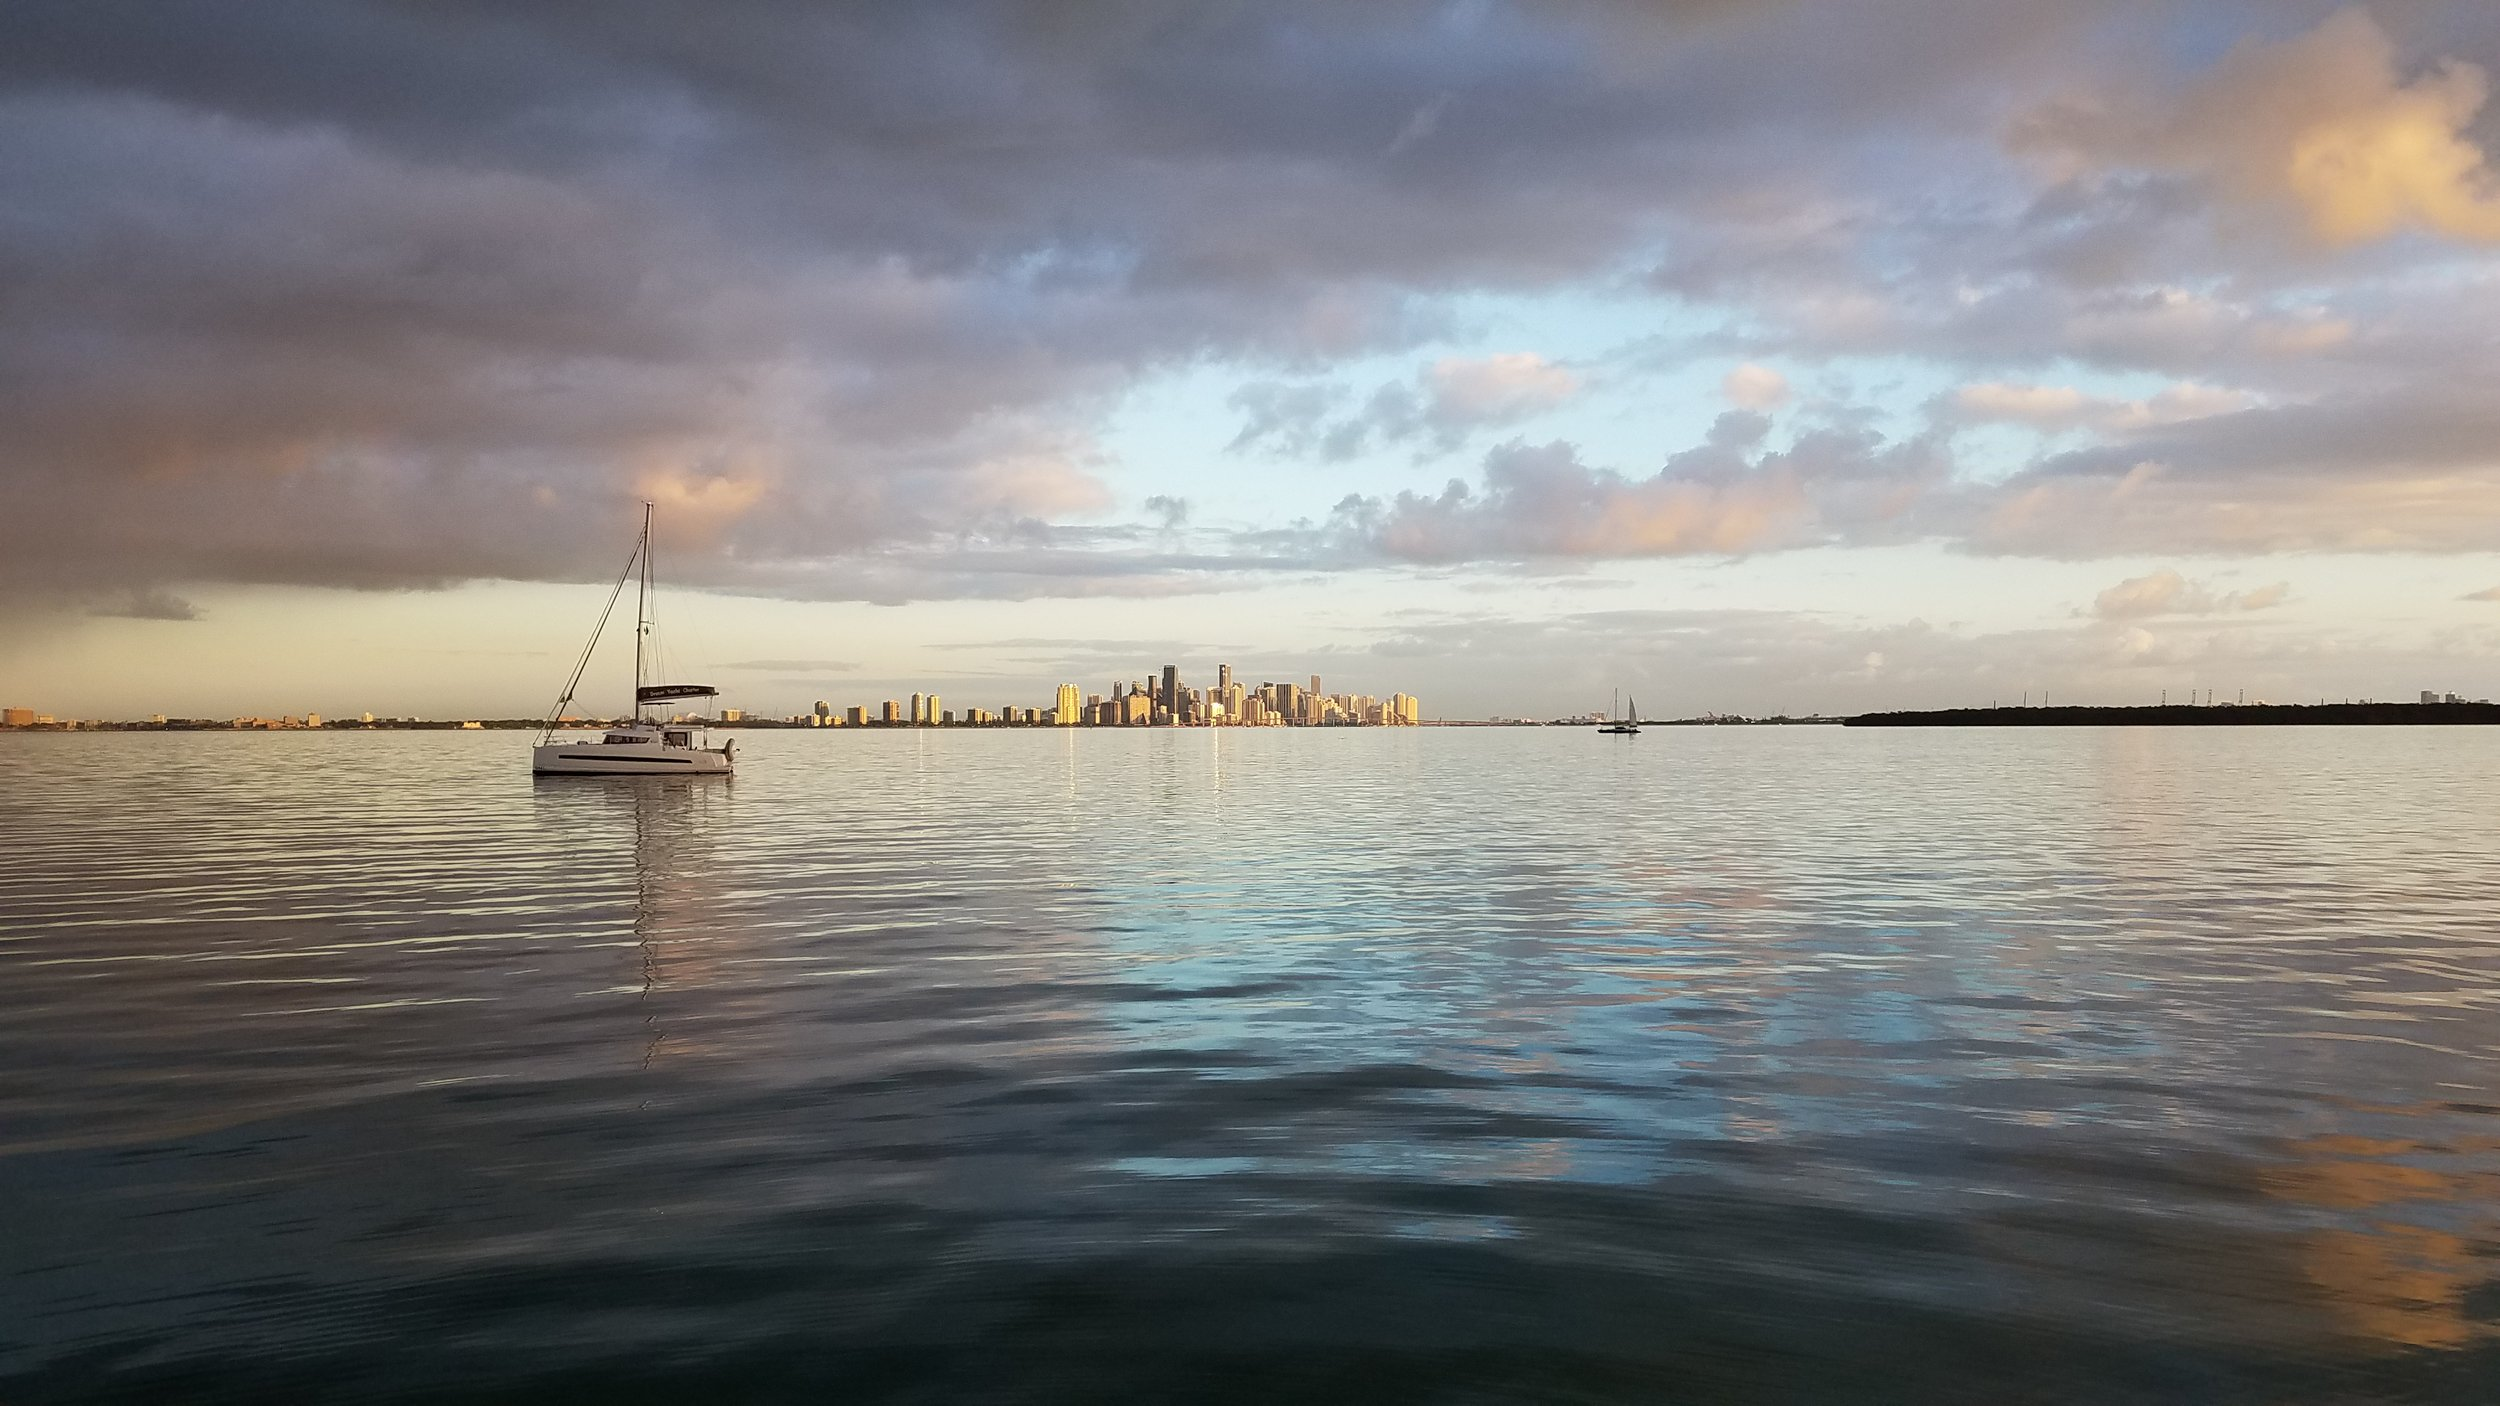 Early morning views of the Miami skyline while anchored in Biscayne Bay after the rain